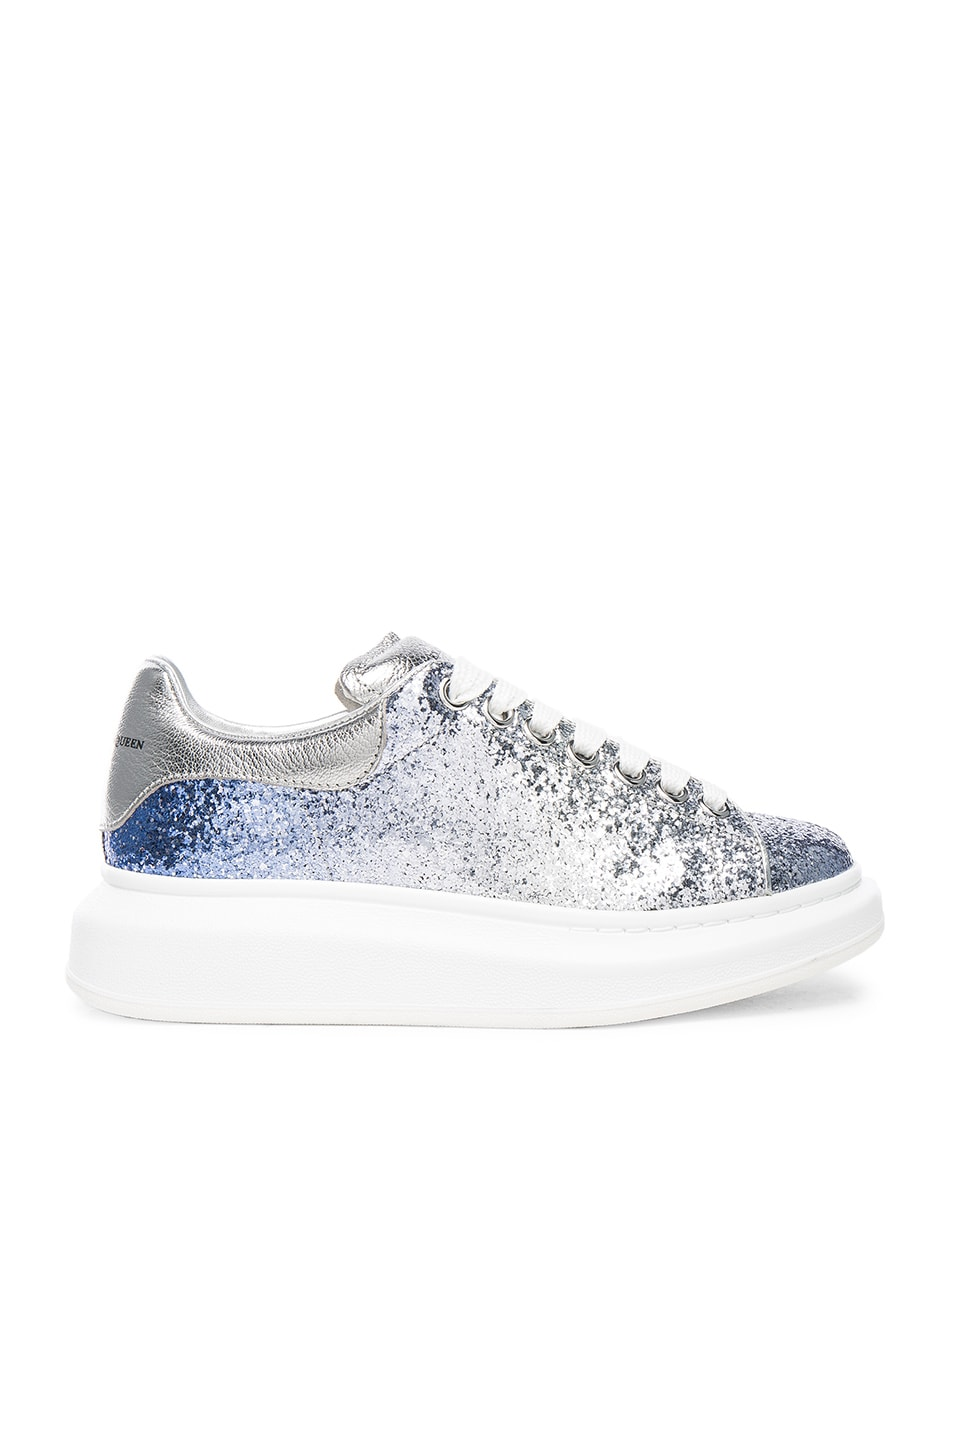 5007913fd984 Image 1 of Alexander McQueen Glitter Platform Lace Up Sneakers in Blue    Silver